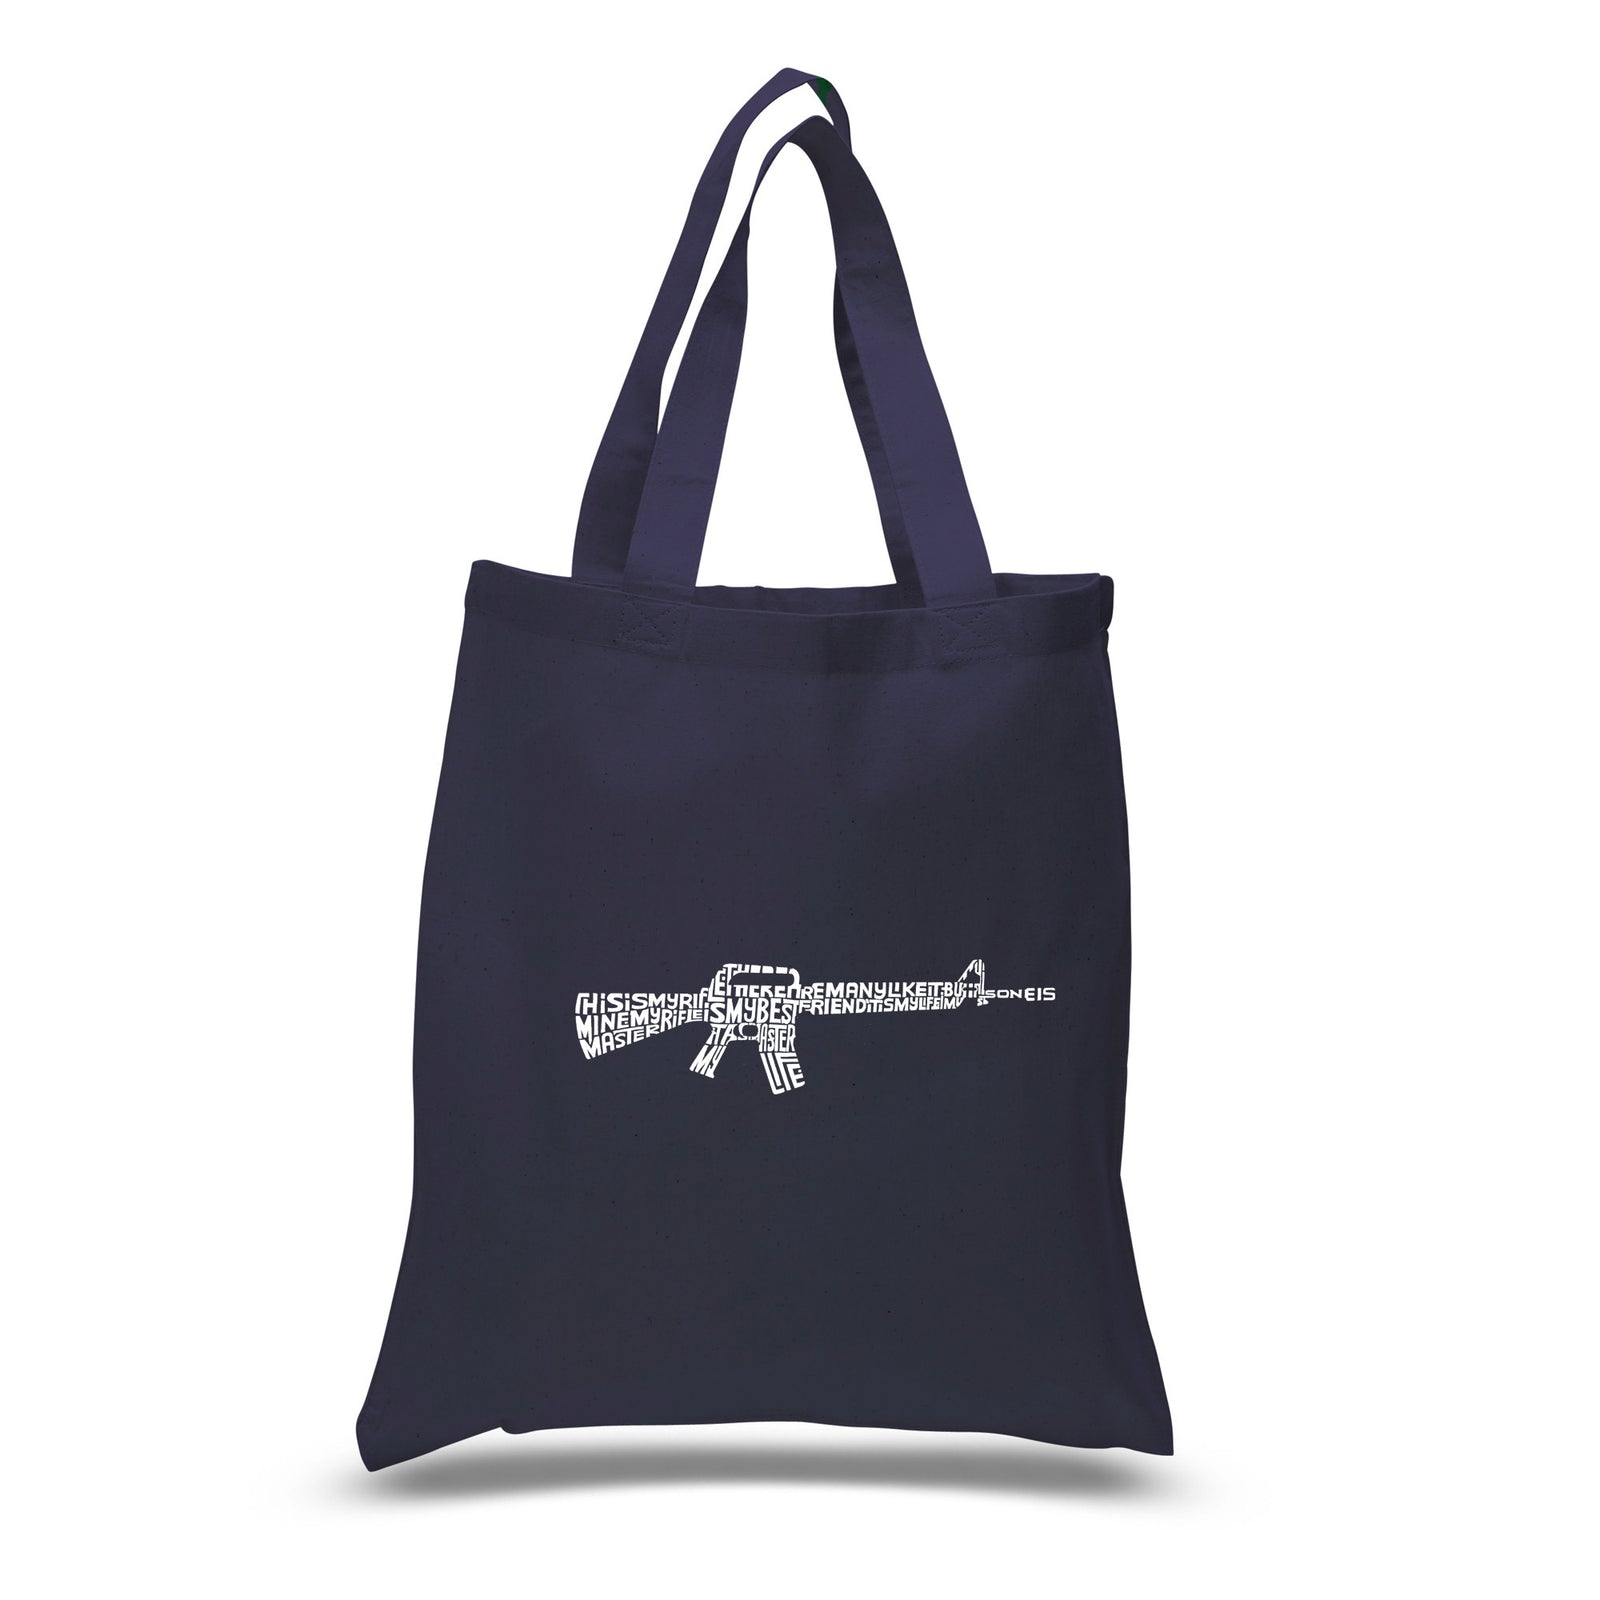 Small Tote Bag - RIFLEMANS CREED